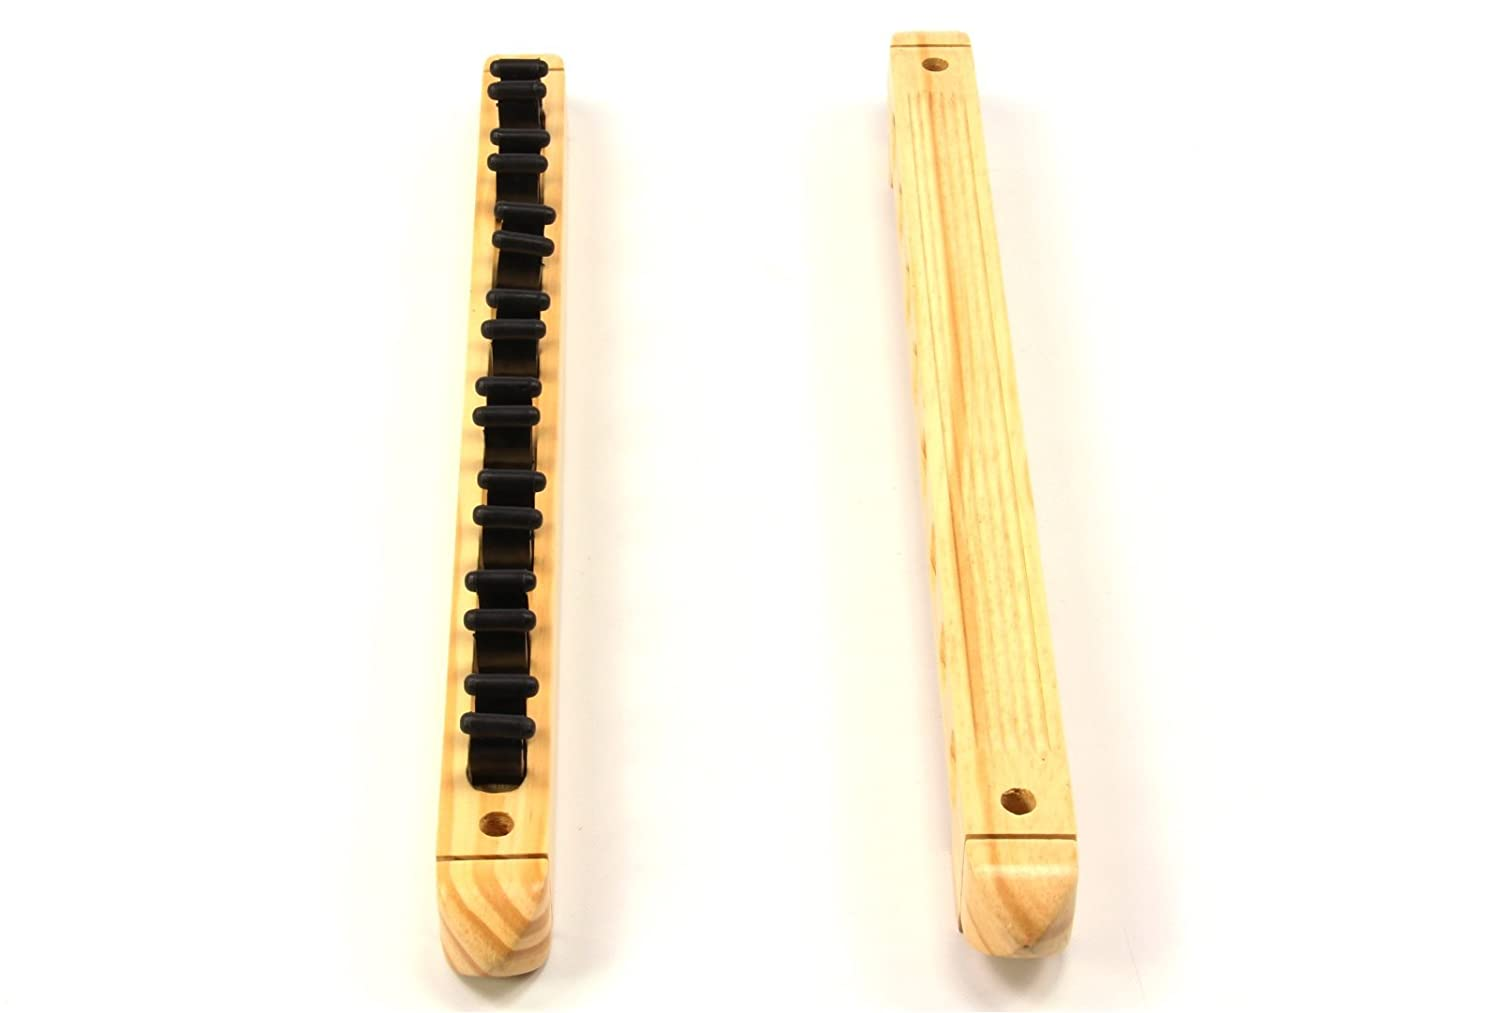 holds Up To 8 Cues LIGHT OAK 8 Way CLIP Snooker Pool Cue Wall Mounted Rack